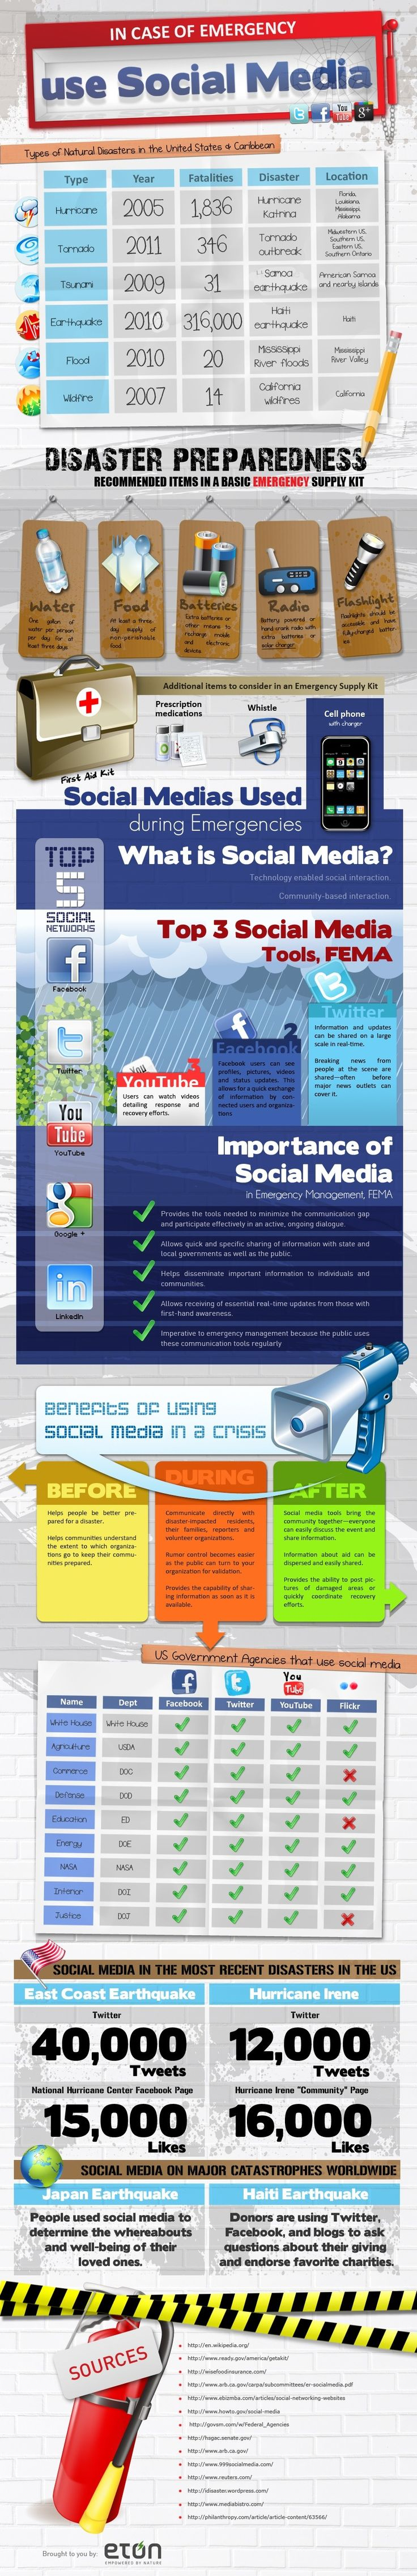 This infographic is about 6 months old now, which is ancient for some social media data.  However, it still makes a great case for using social media in emergency and disaster management.